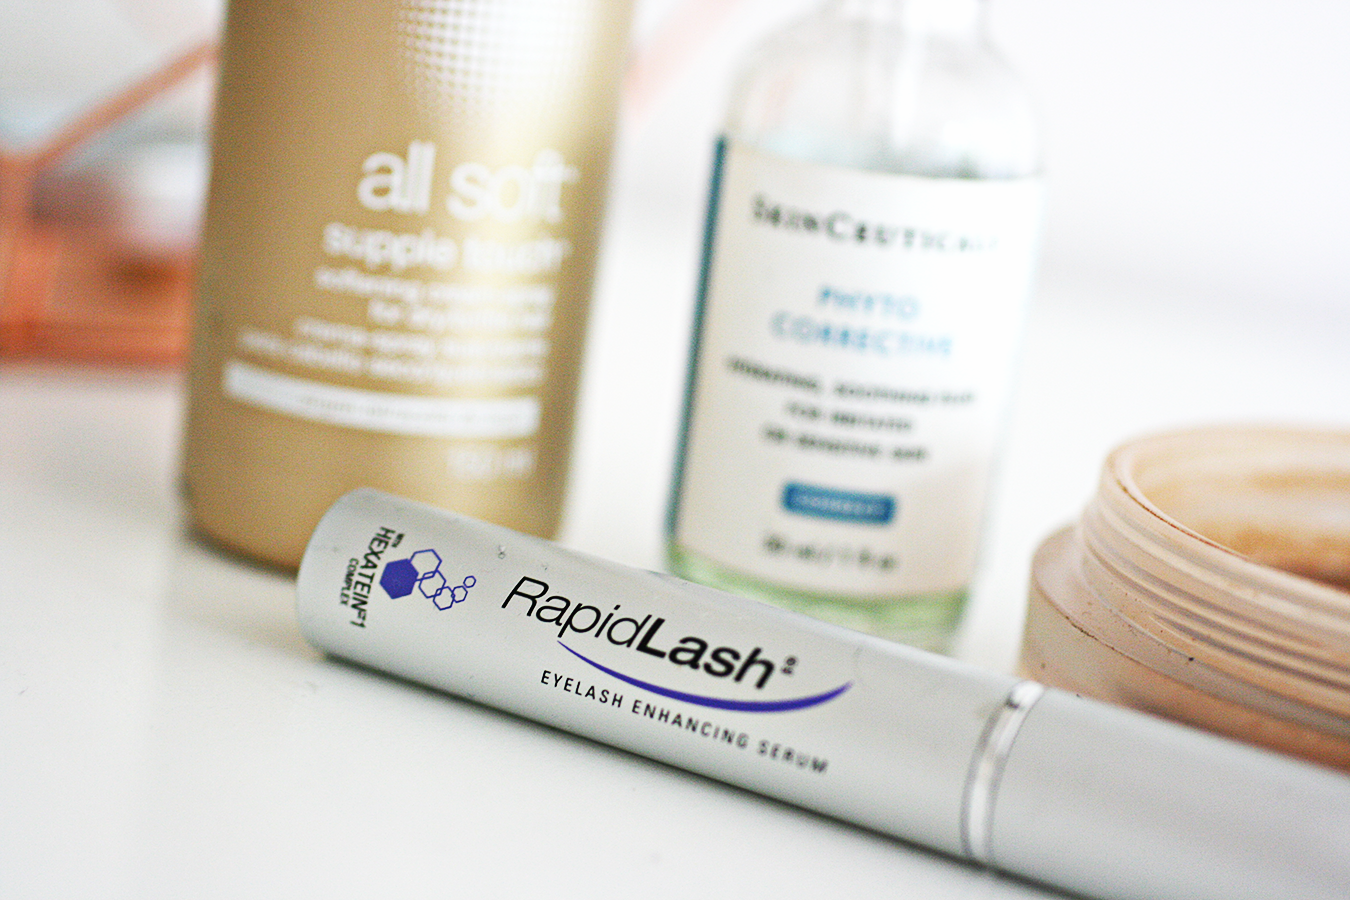 RapipLash Eye Lash Enhancing Serum